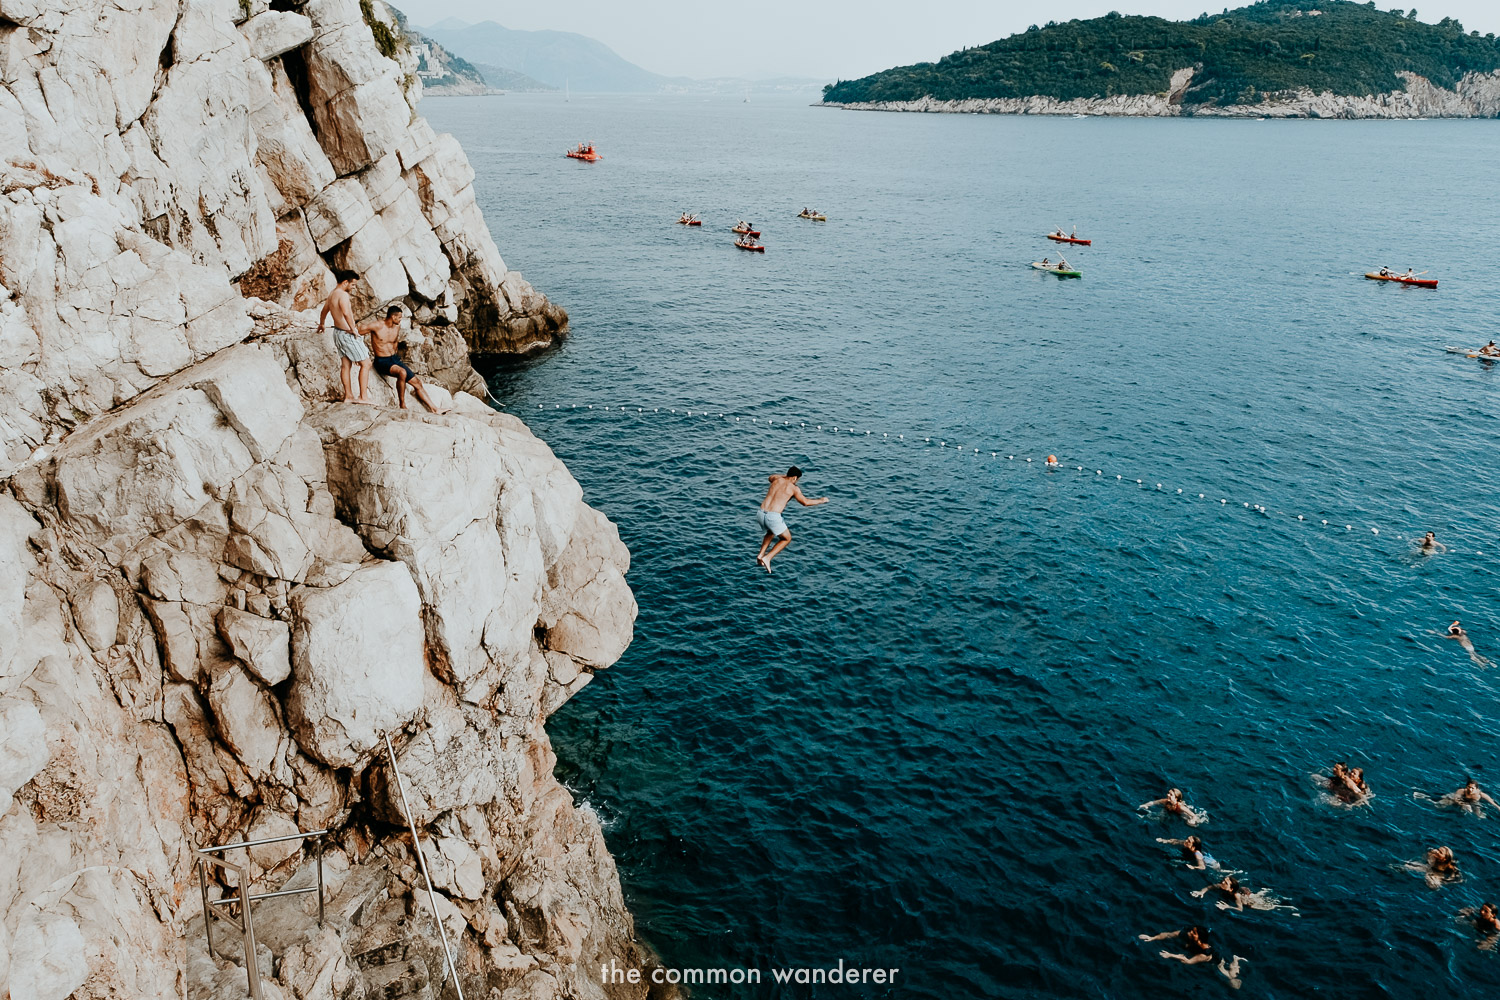 Cliff jumping in Dubrovnik is super popular